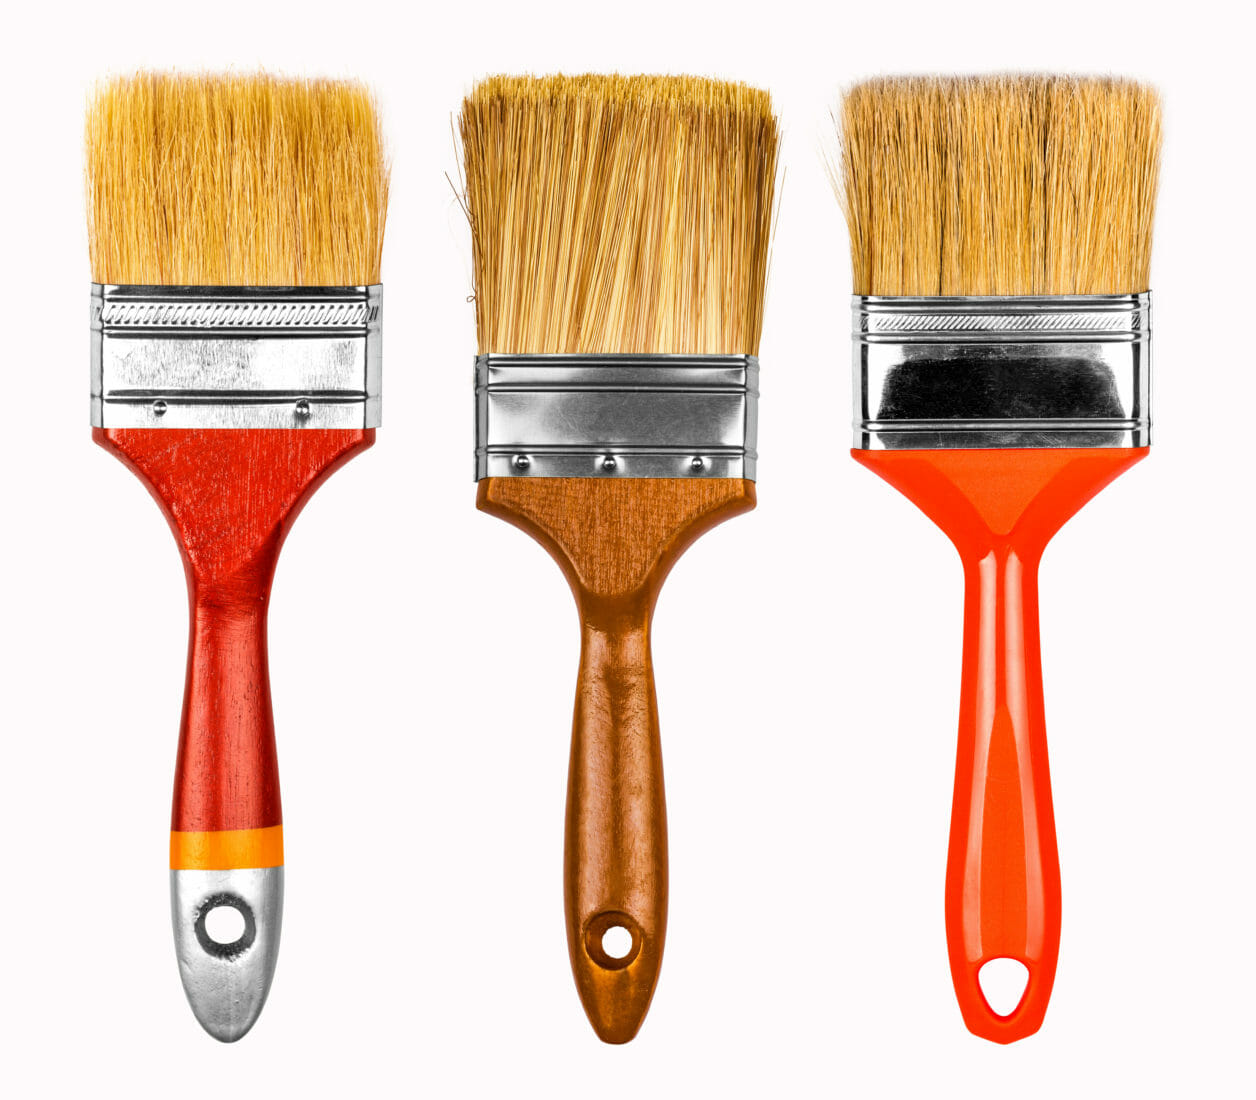 How to choose the right paint brush